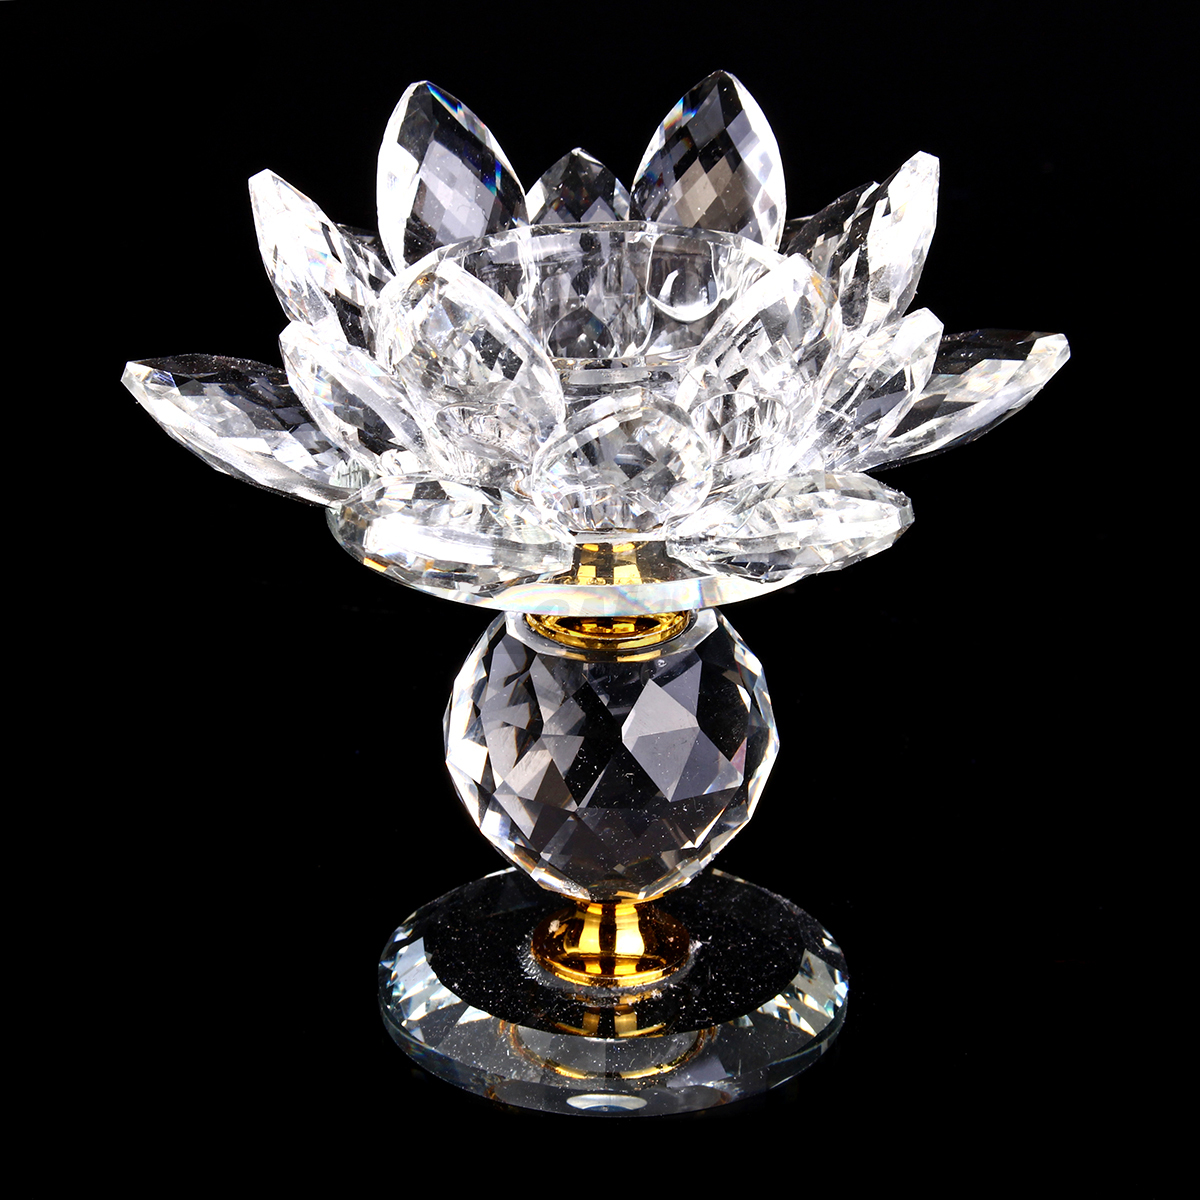 Colorful-Crystal-Glass-Lotus-Candle-Tea-Light-Holder-Buddhist-Candlestick-9-16cm